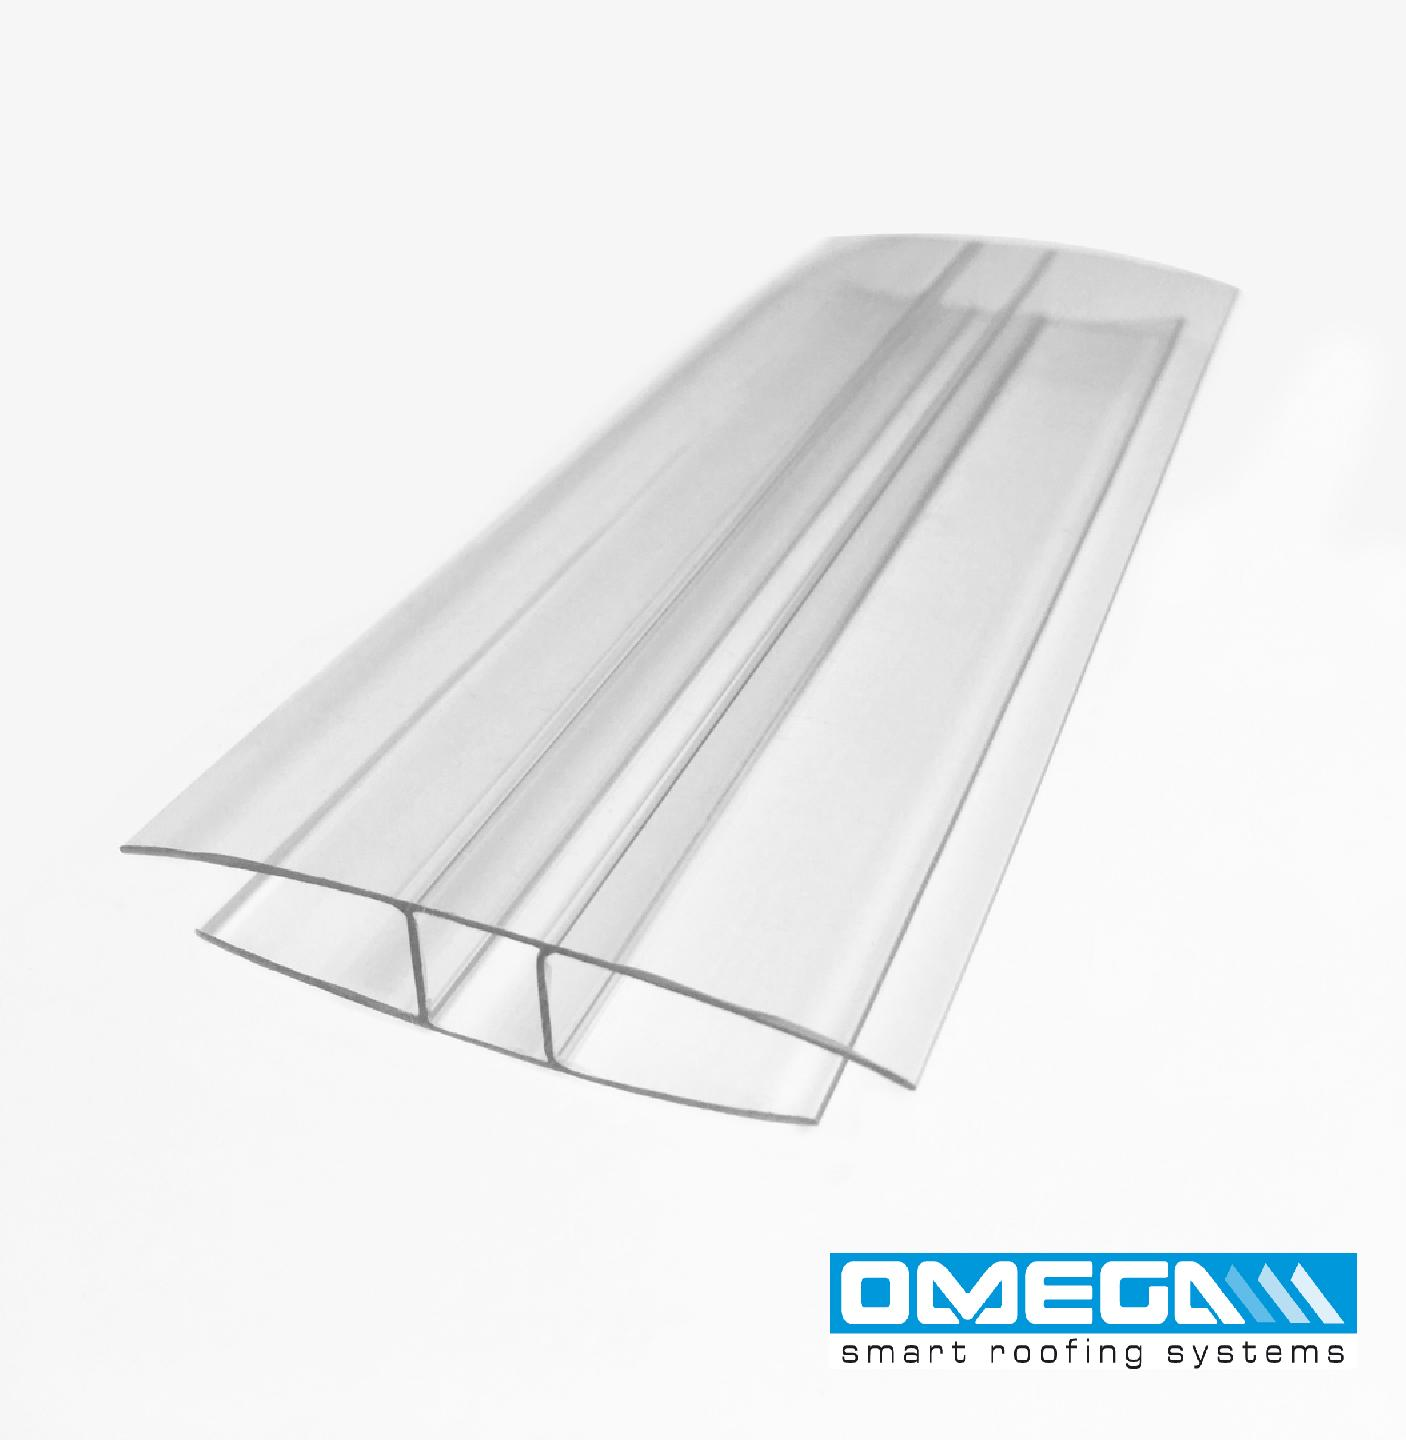 H Joining profile for 8/10mm polycarbonate sheets, 3.0M